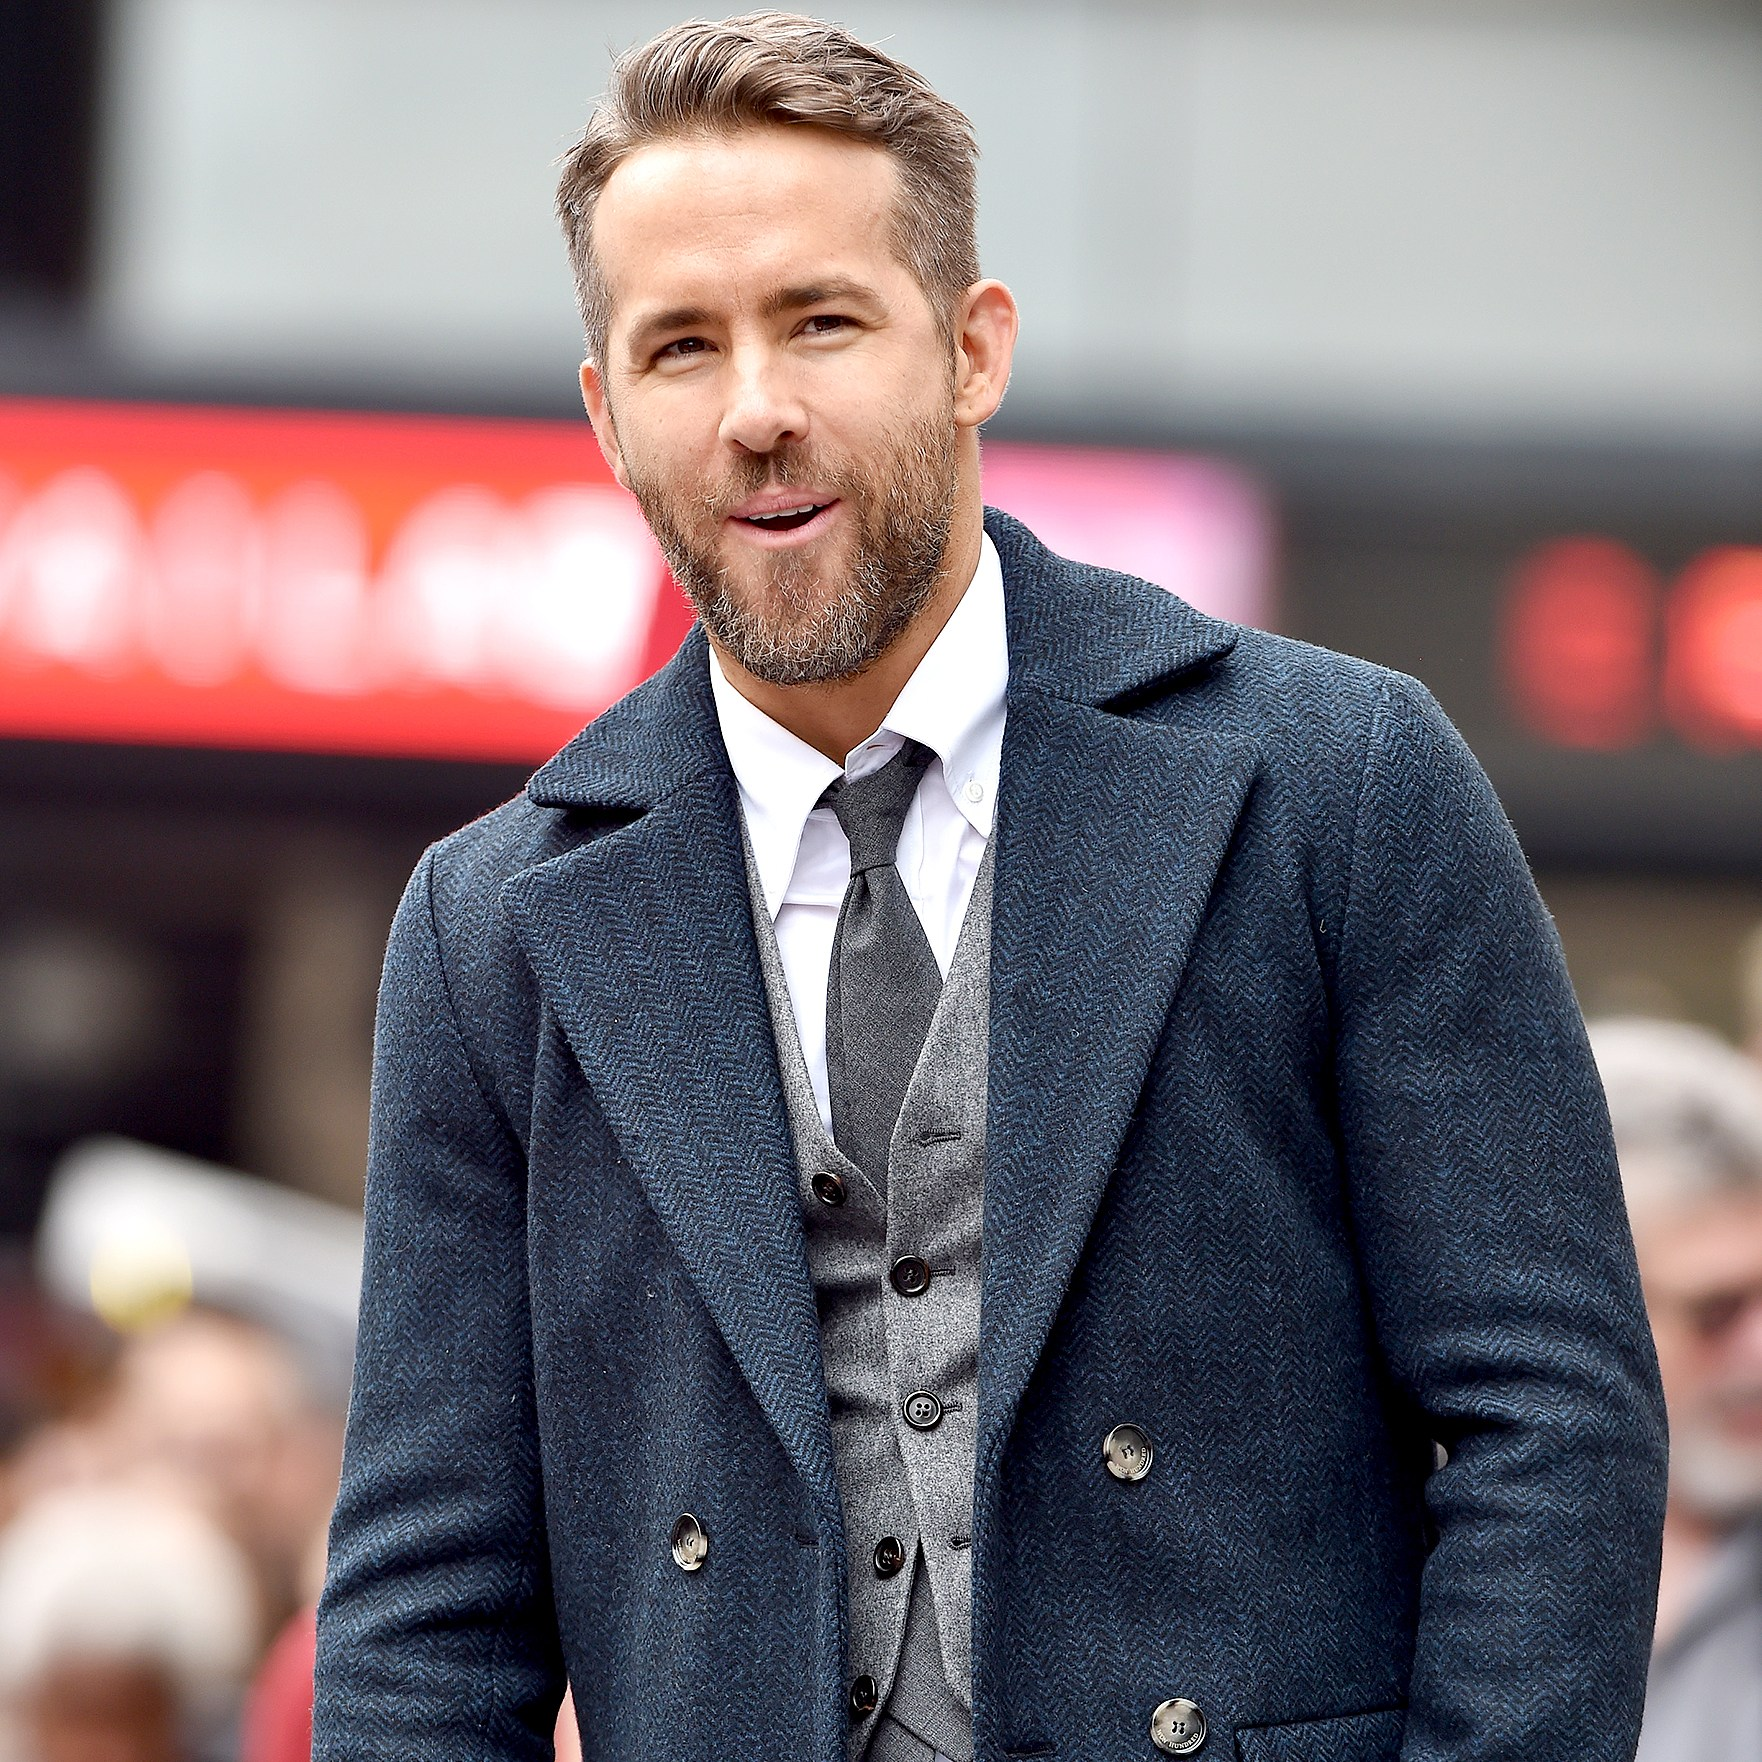 Ryan Reynolds honored with Star on the Hollywood Walk of Fame on December 15, 2016 in Hollywood, California.